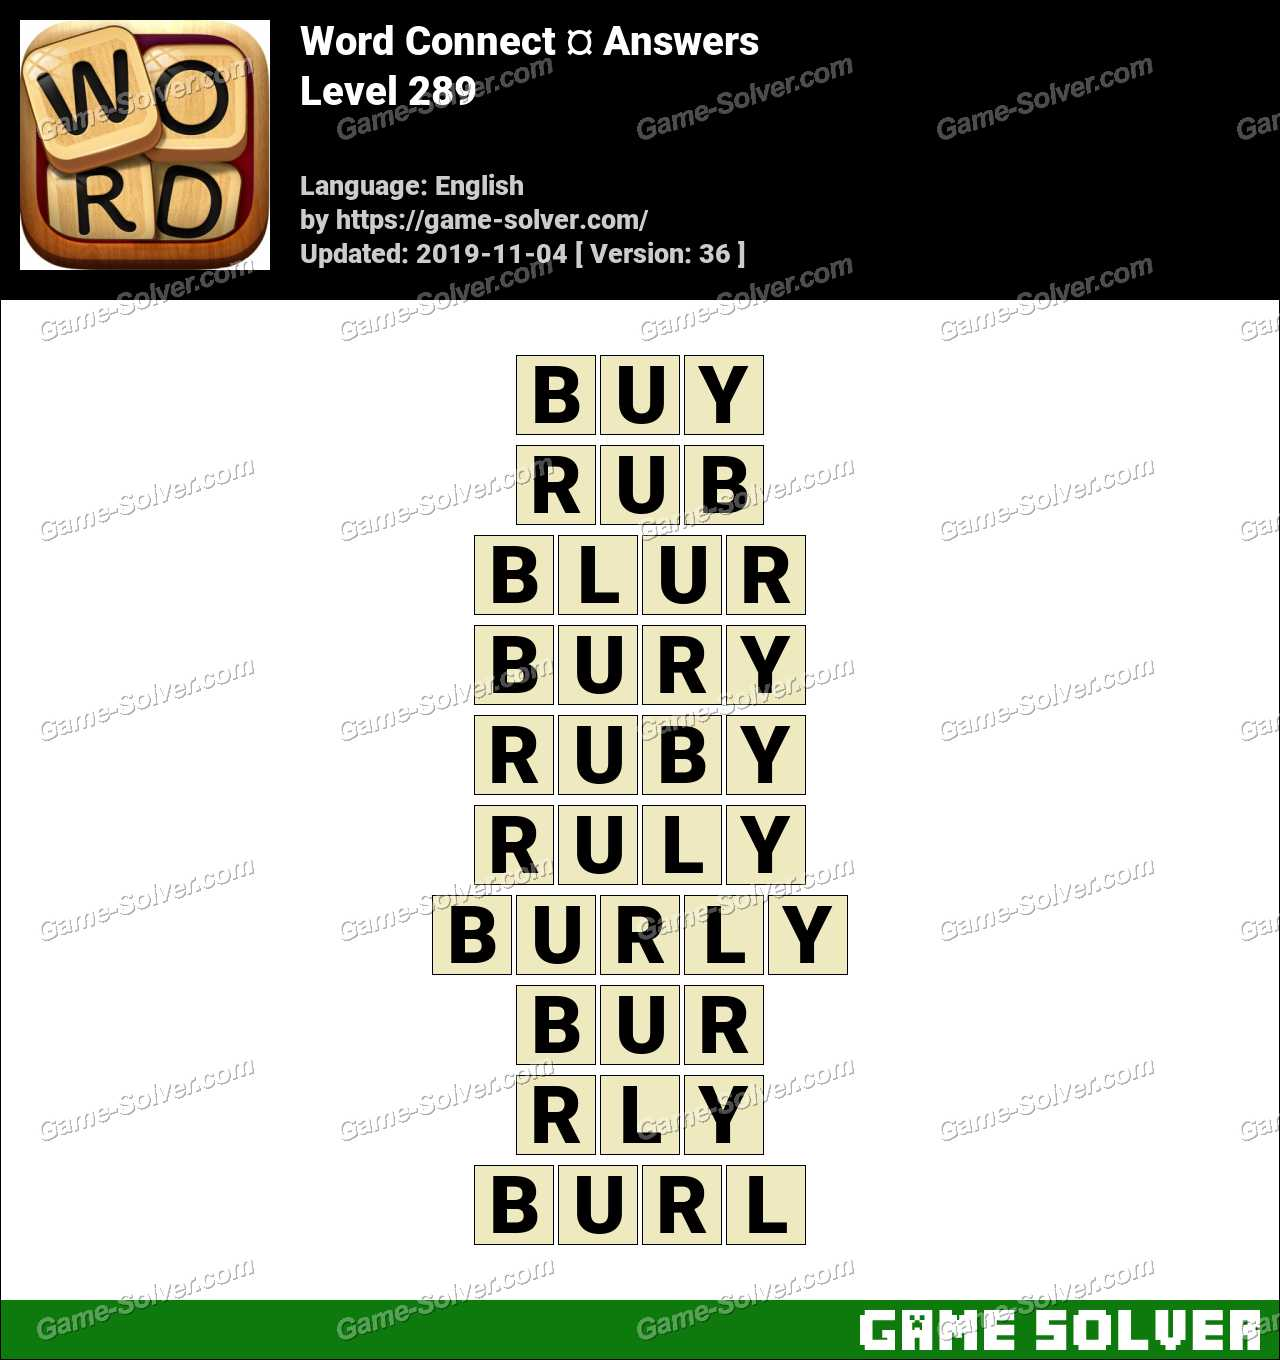 Word Connect Level 289 Answers